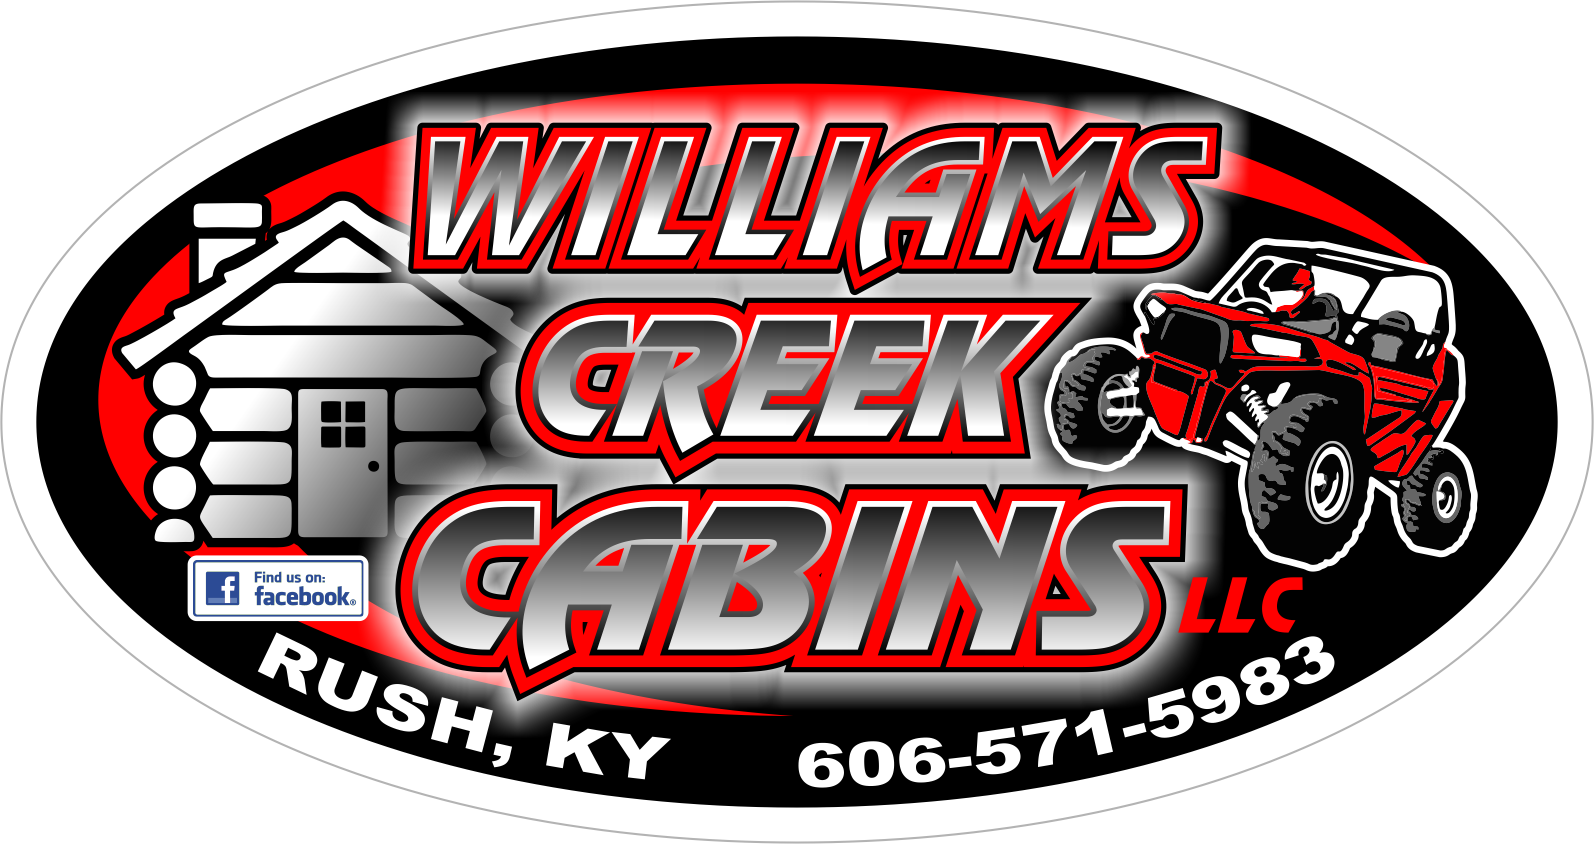 Williams Creek Cabins